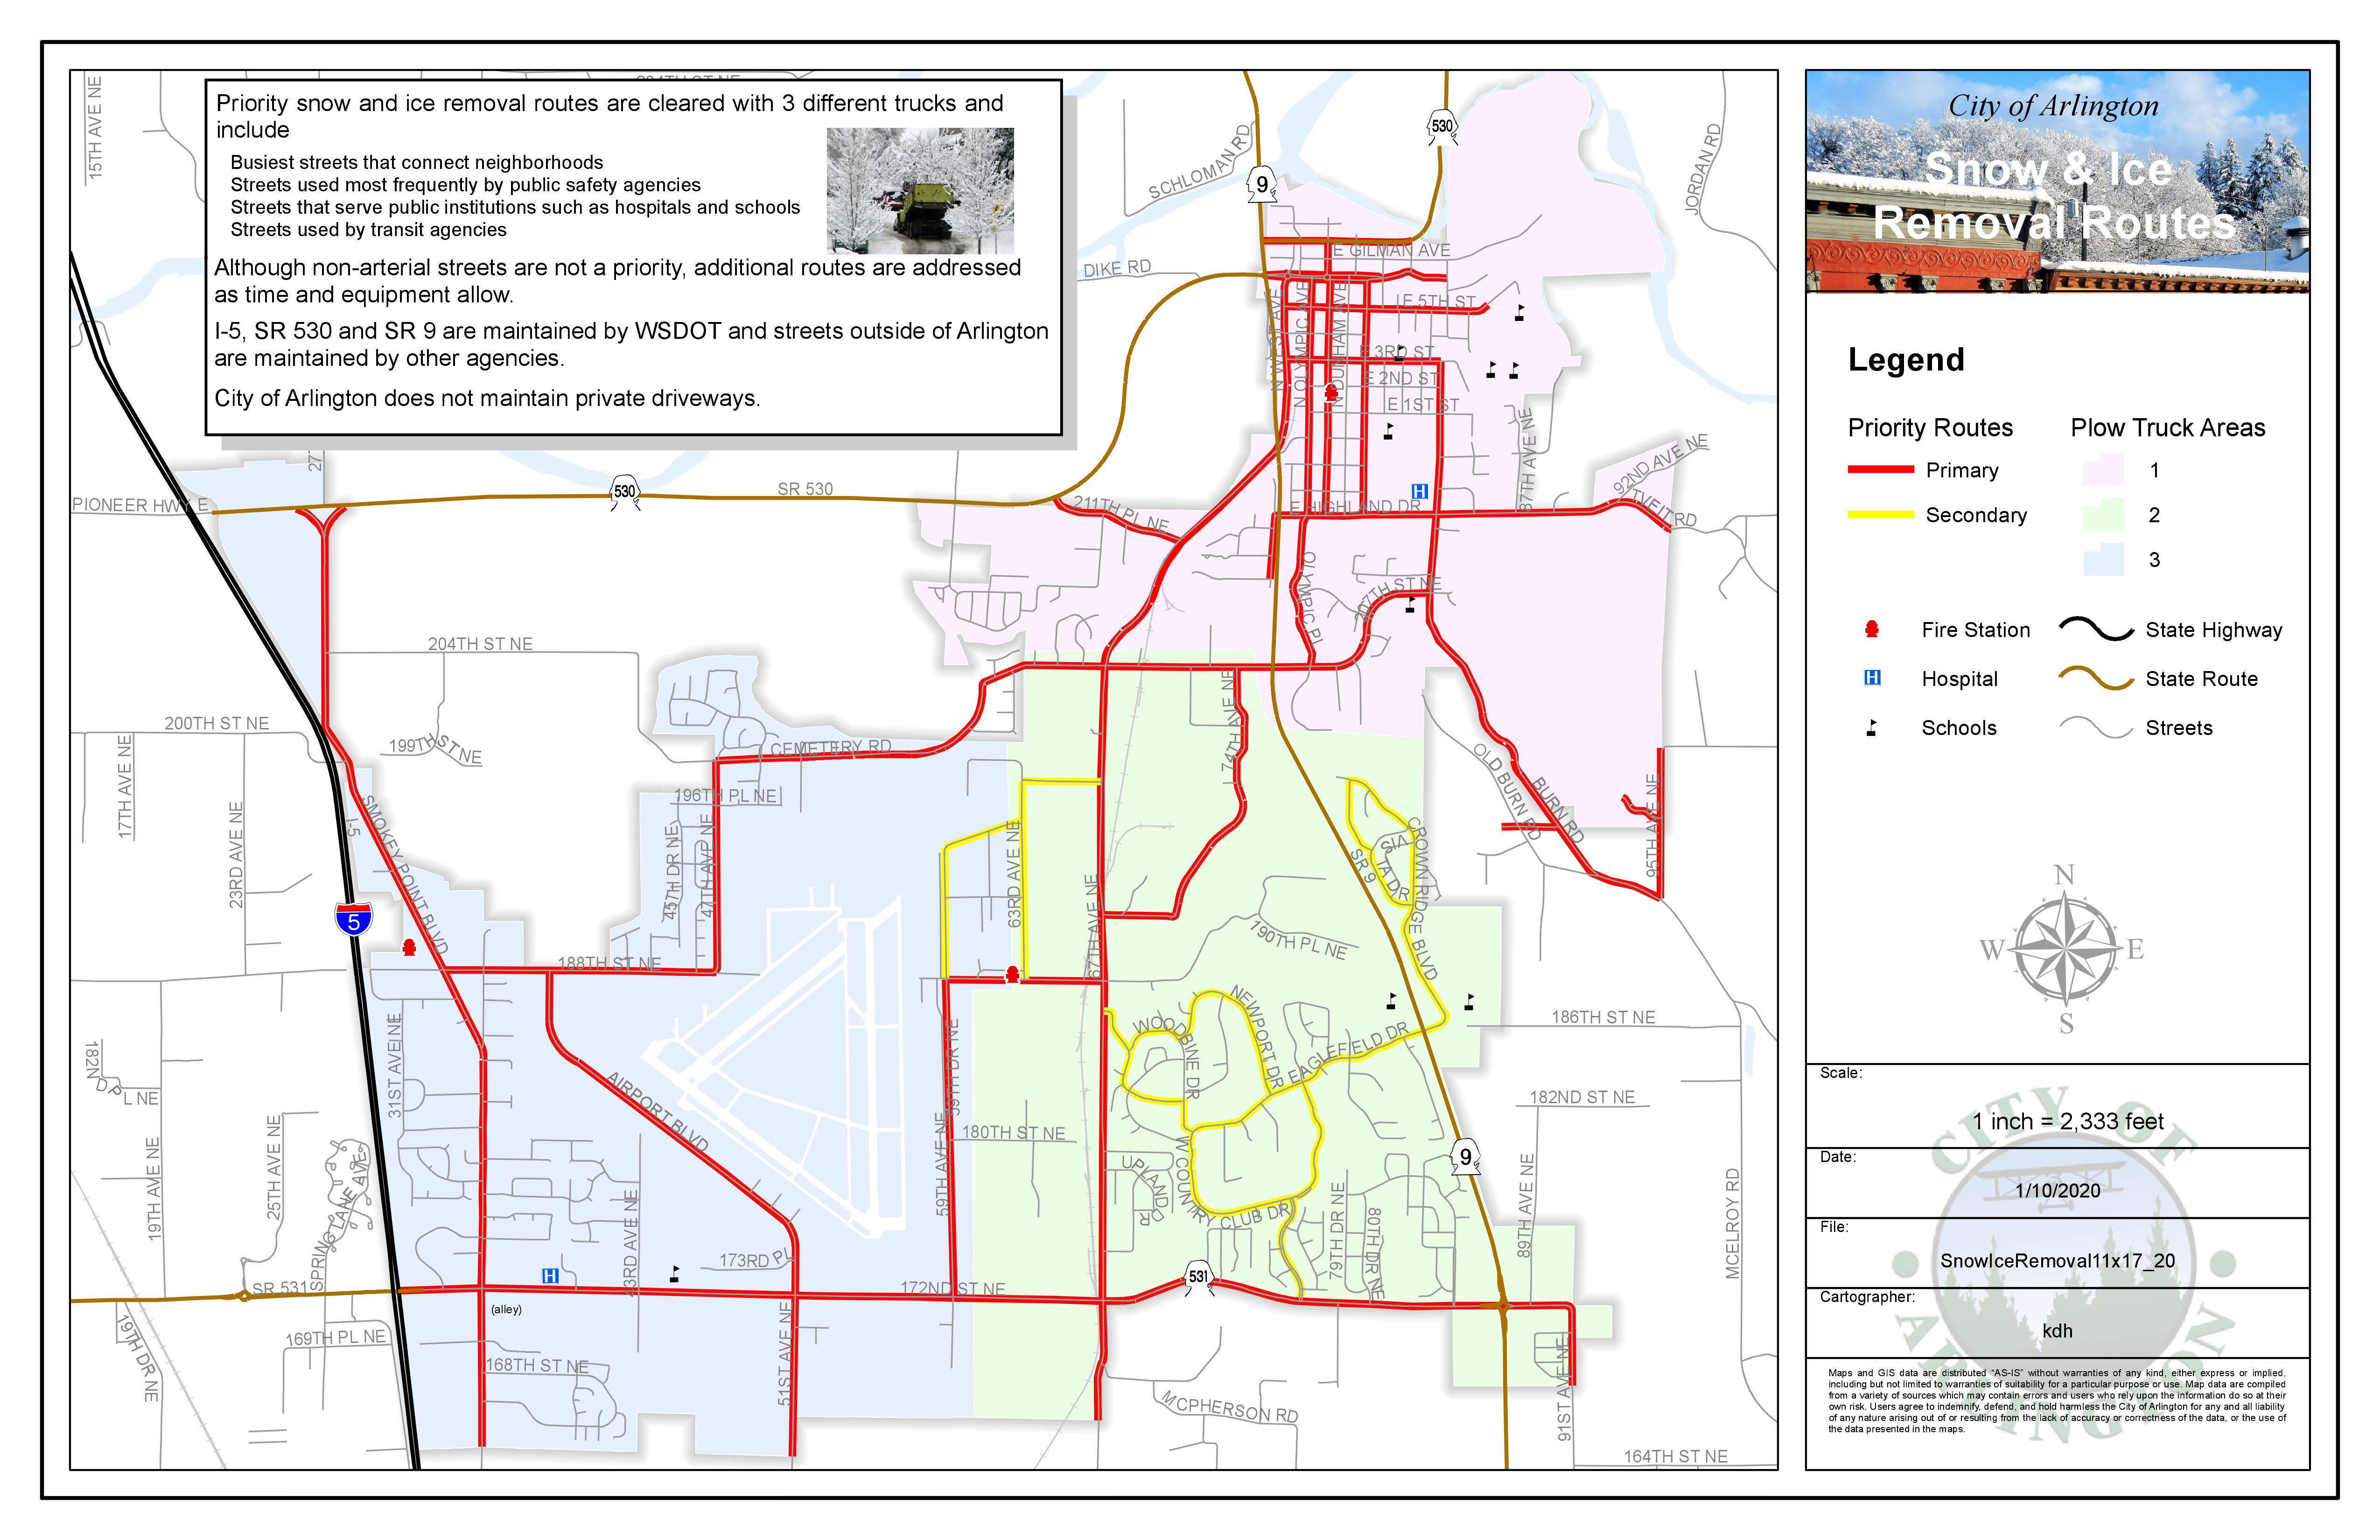 City of Arlington map showing which roads are cleared first during snow or ice events